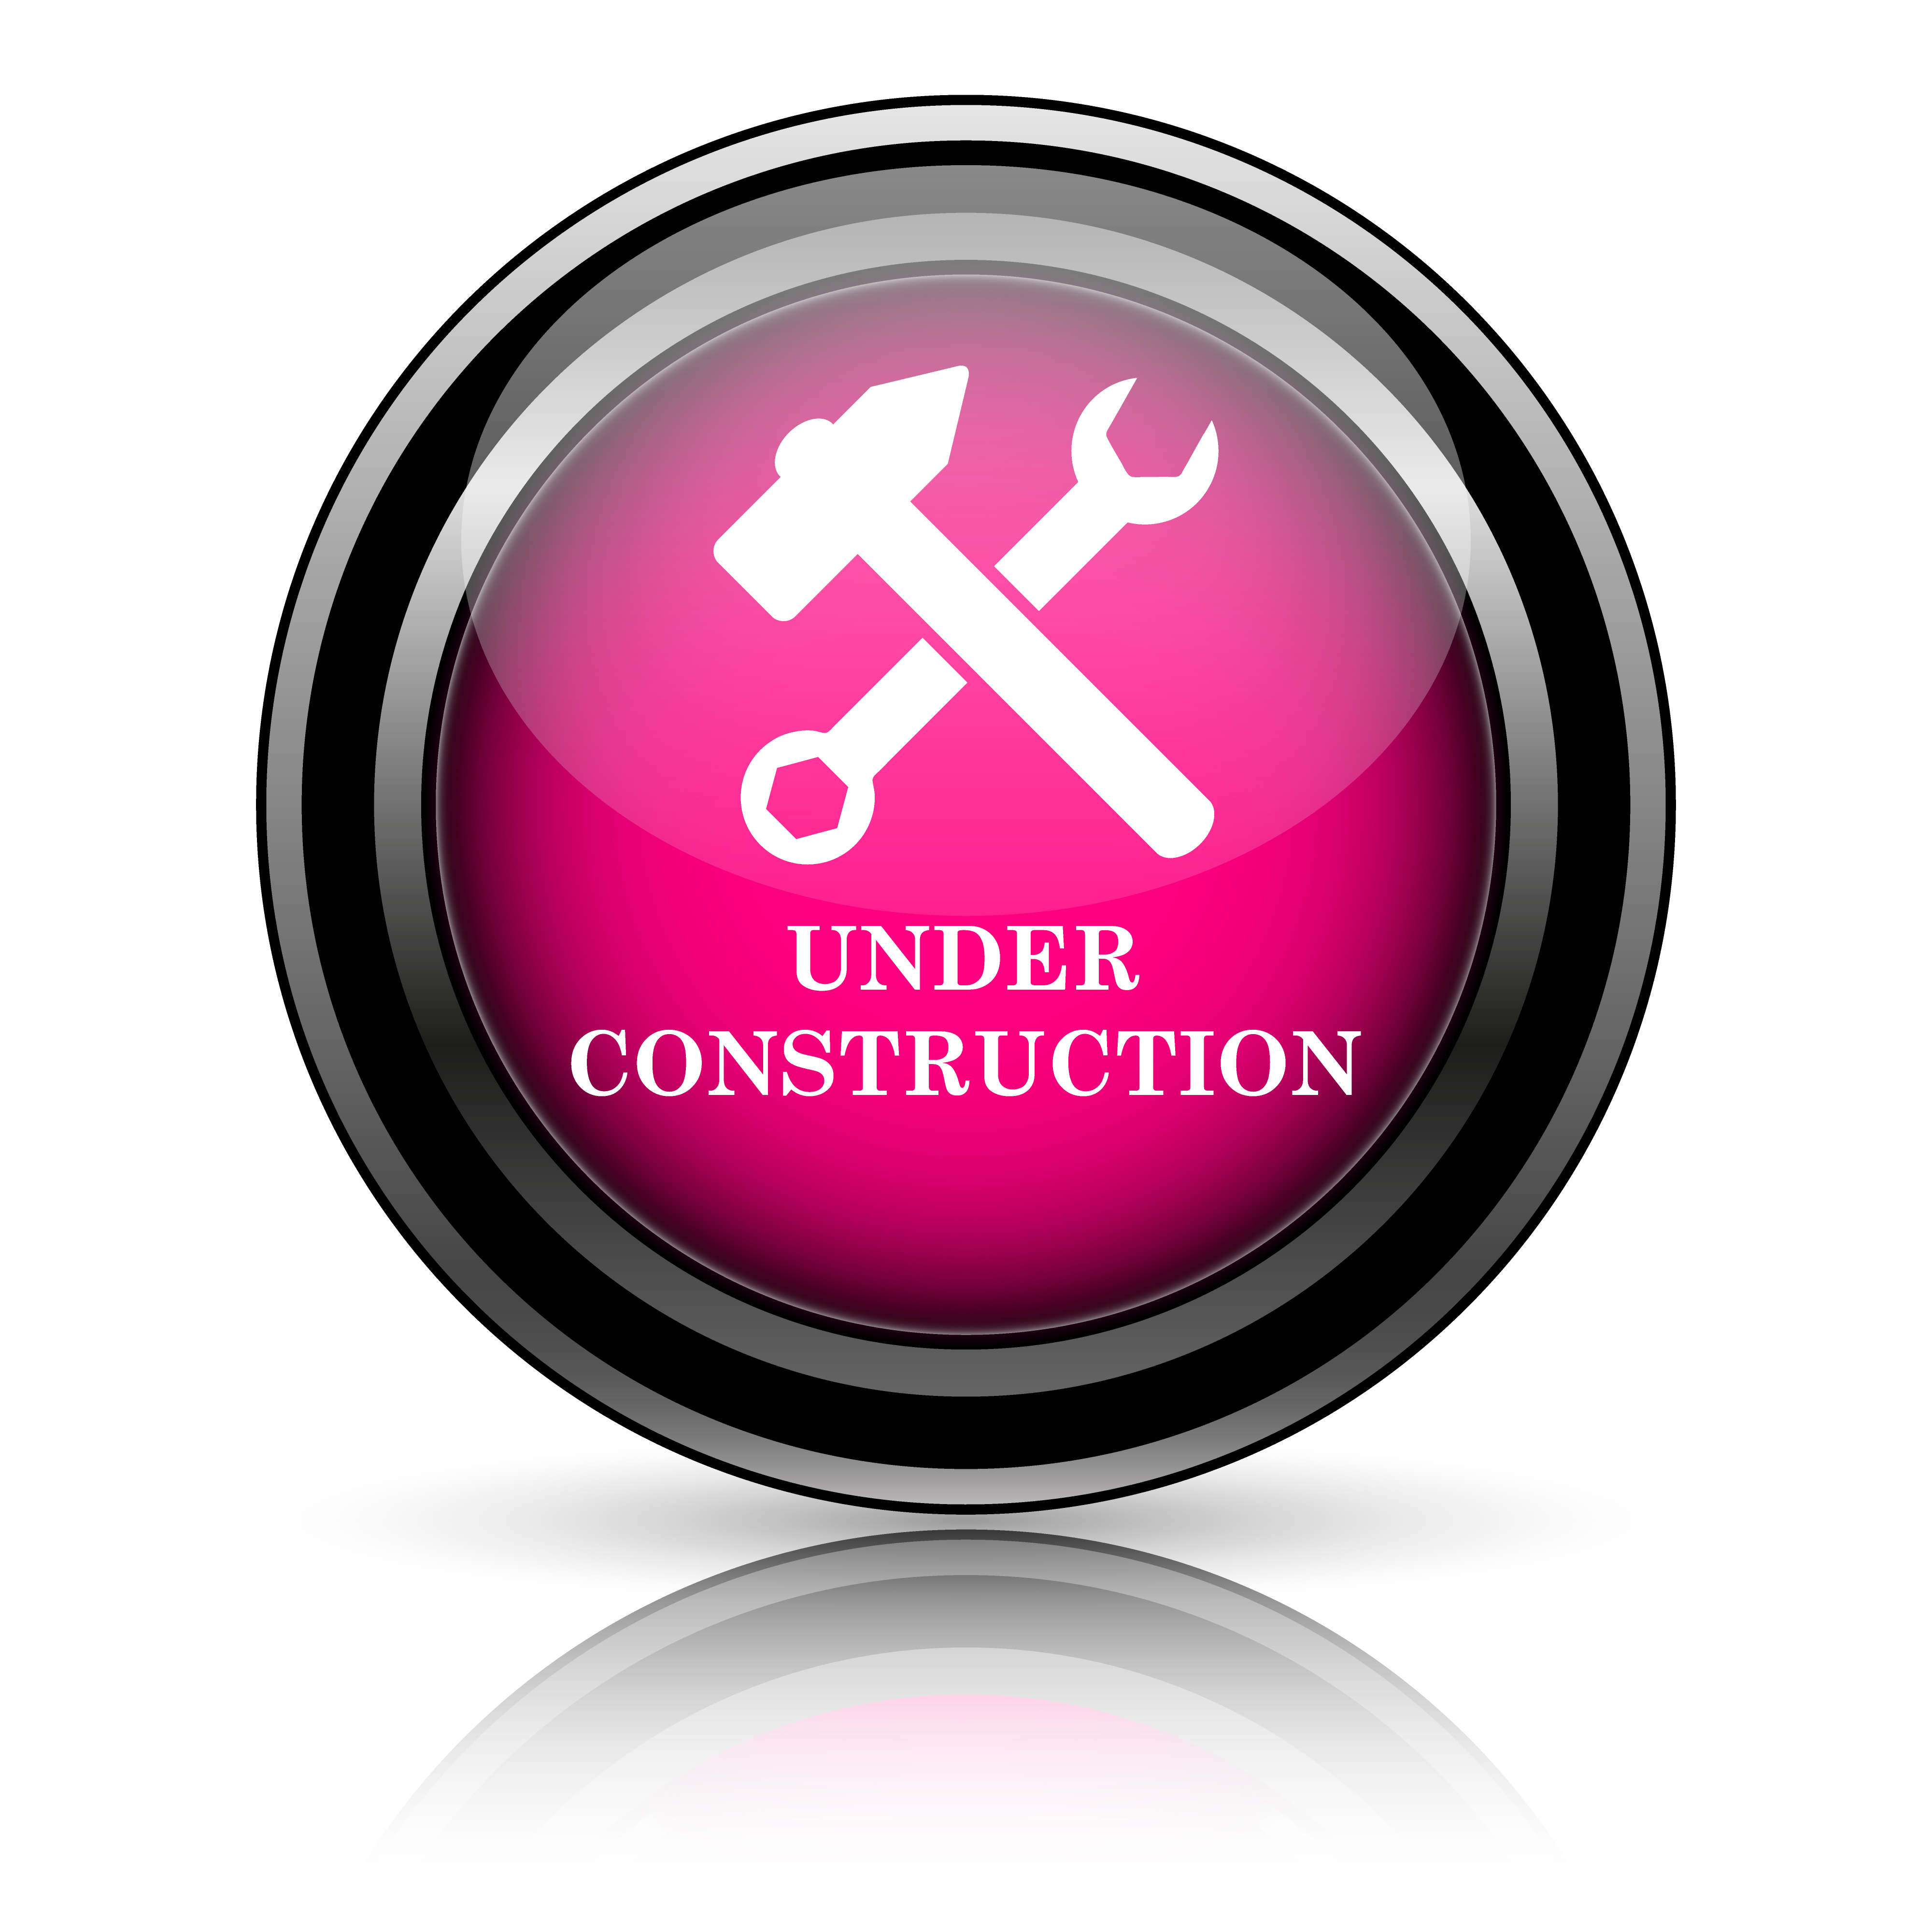 Sorry, this website is currently under construction